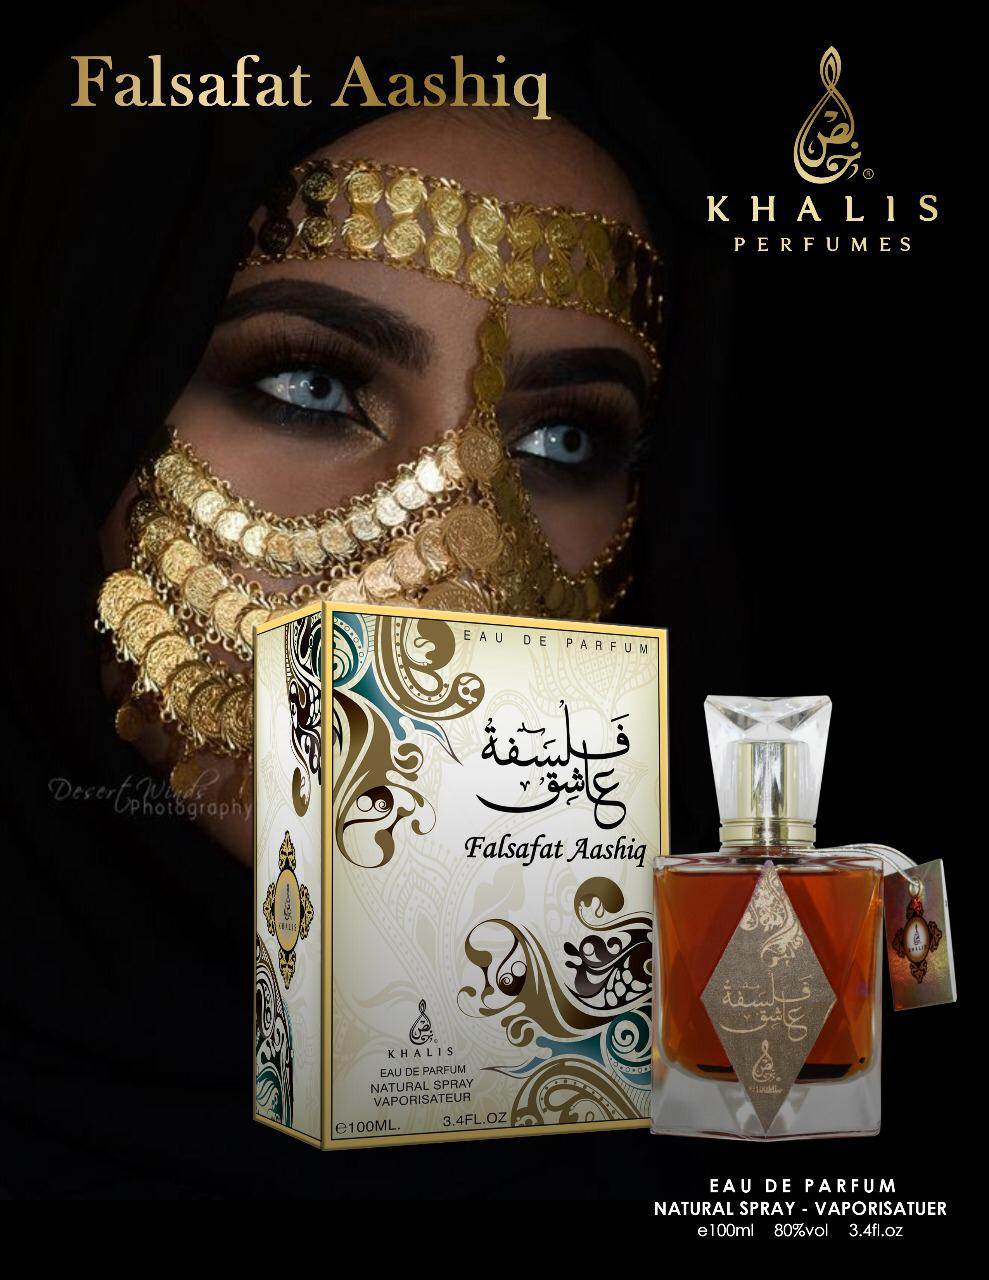 khalis-falsafat-aashiq-perfume-for-men-and-women-100-ml-edp